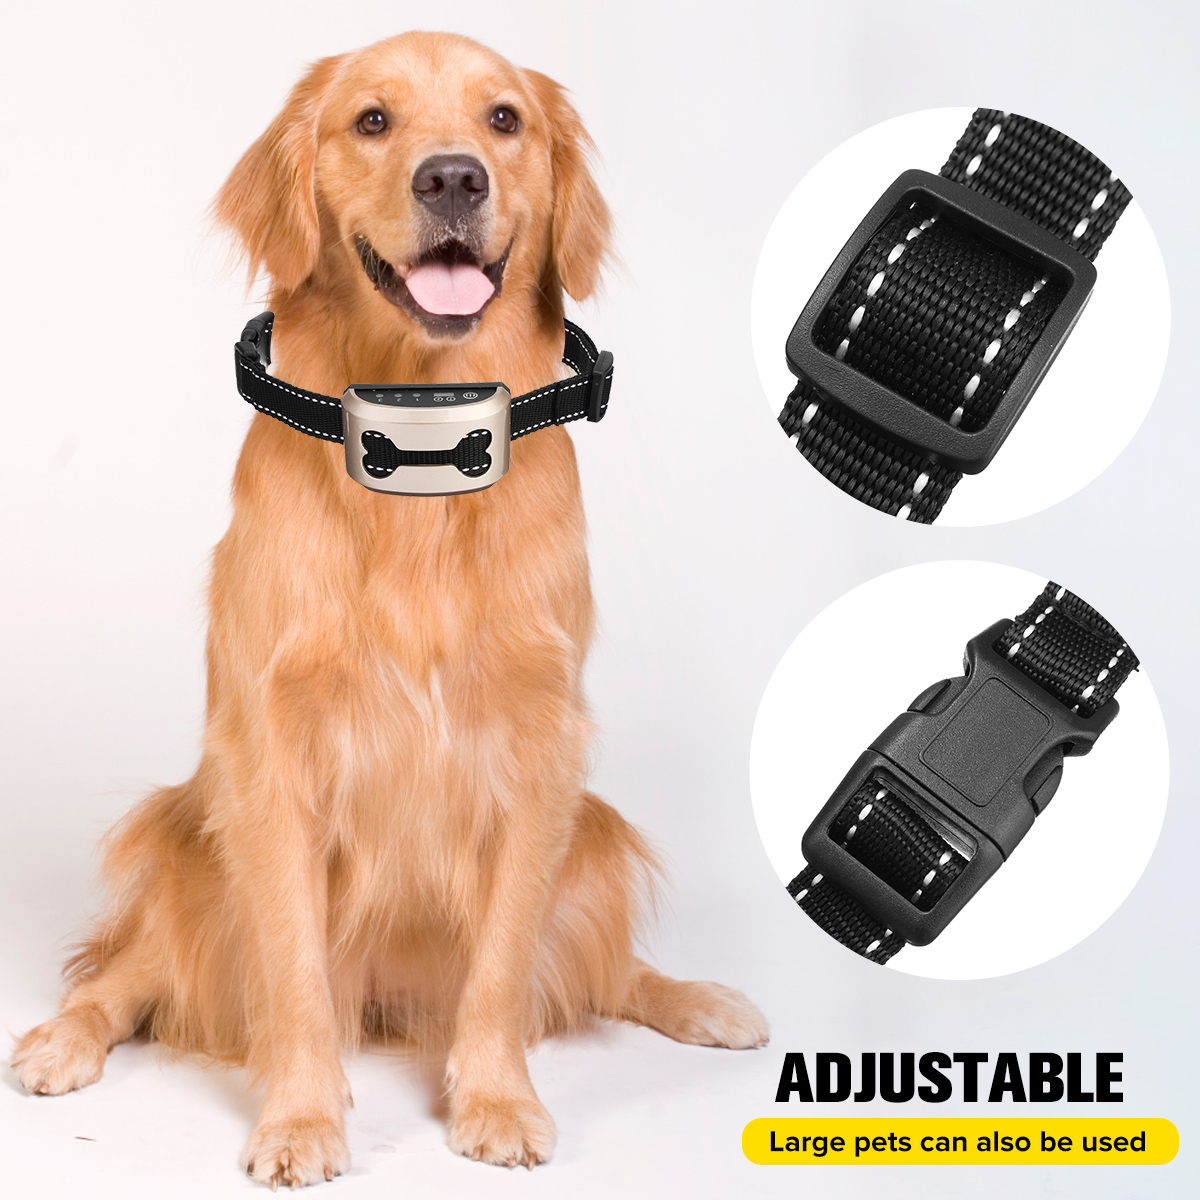 Rechargeable and Anti Bark Dog Shock Collar for Dog Training with Remote and Voice Control 1